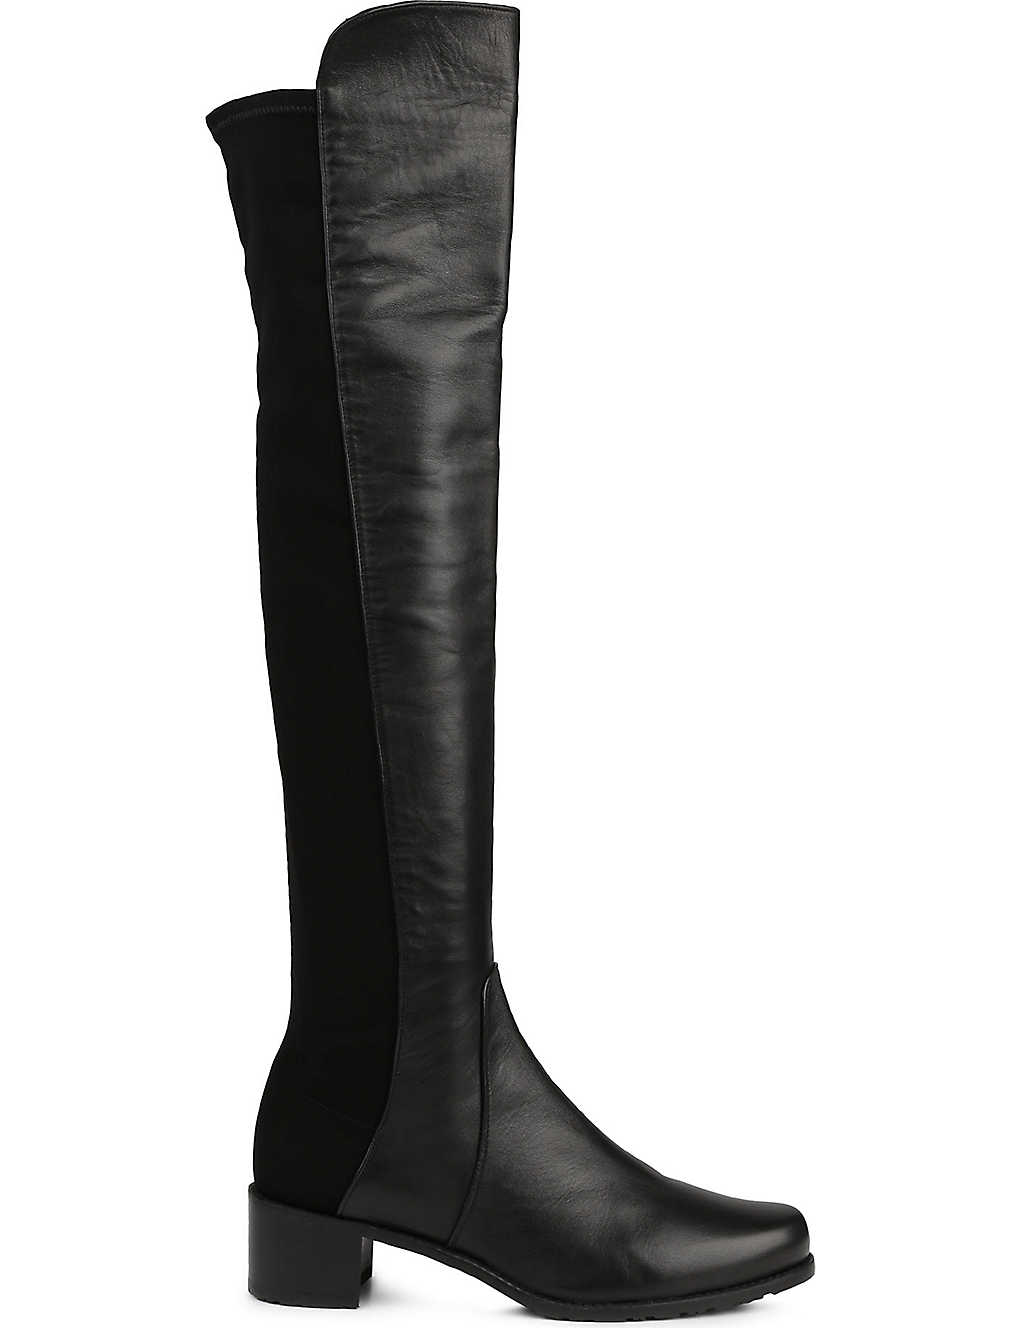 STUART WEITZMAN: Reserve stretch-back leather boots